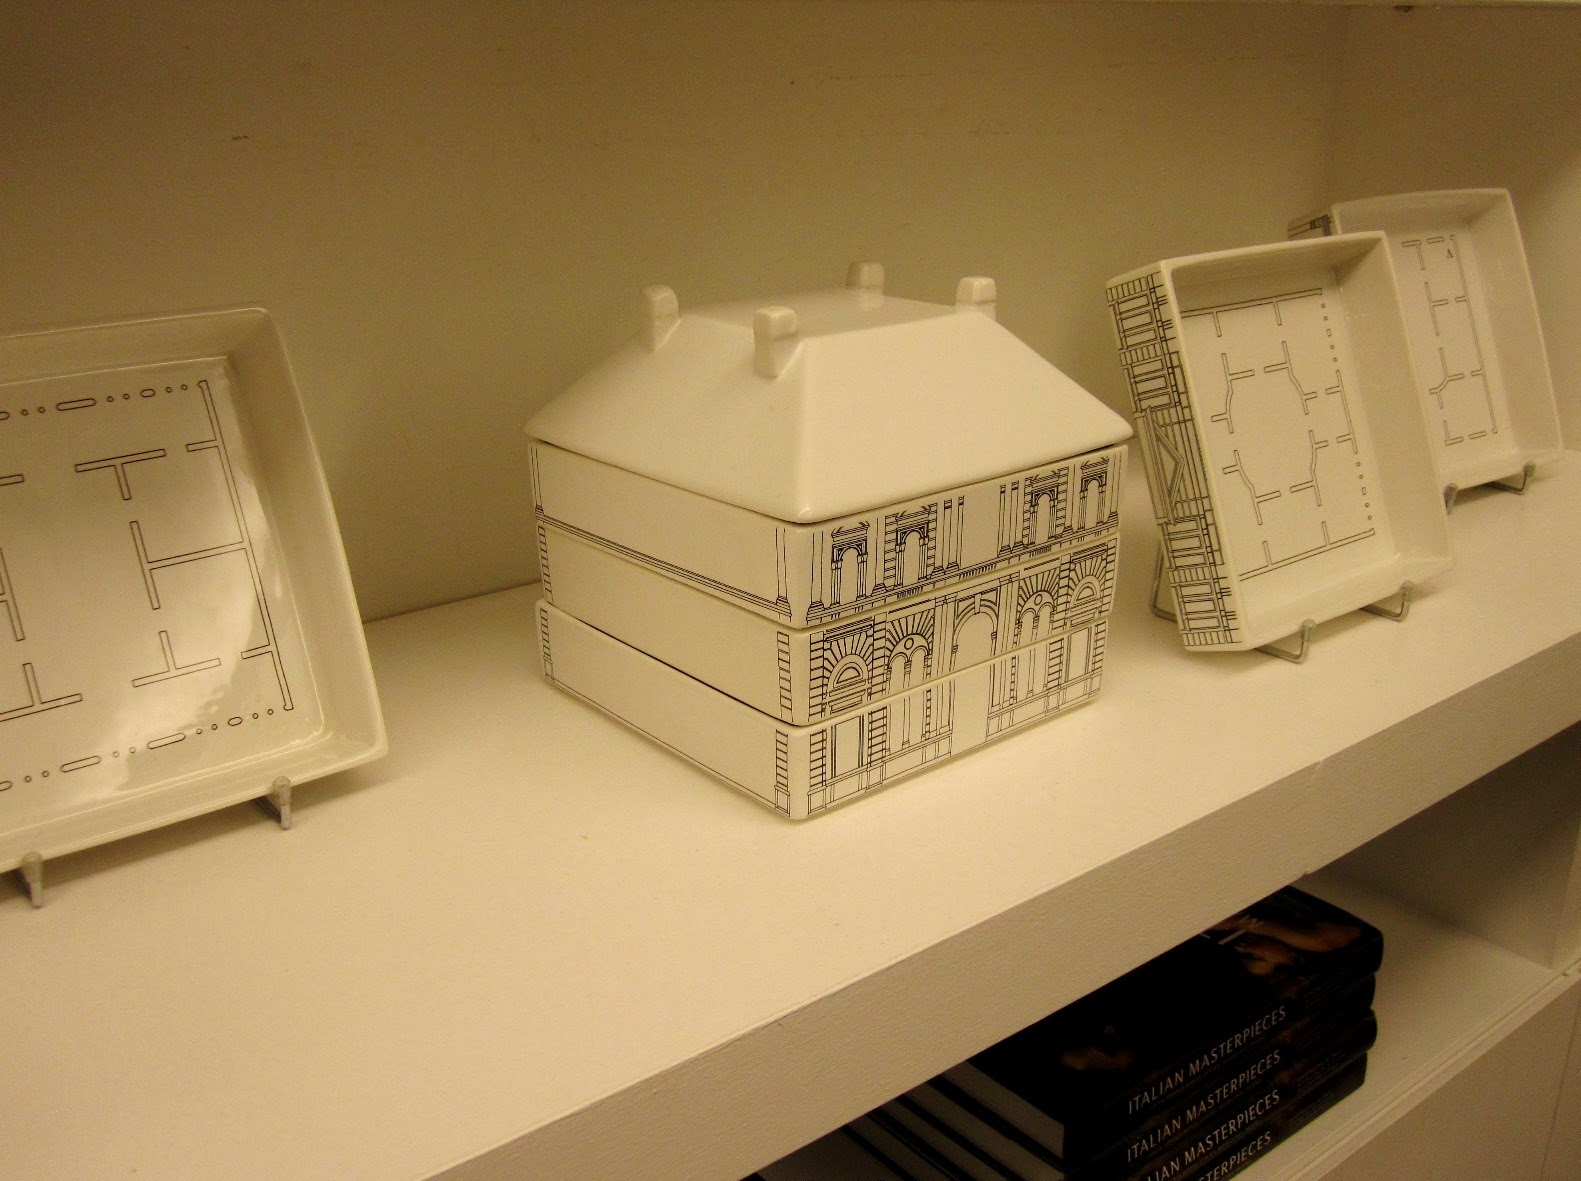 Porcelain stacking plates in the shape of a house on display in a shop.